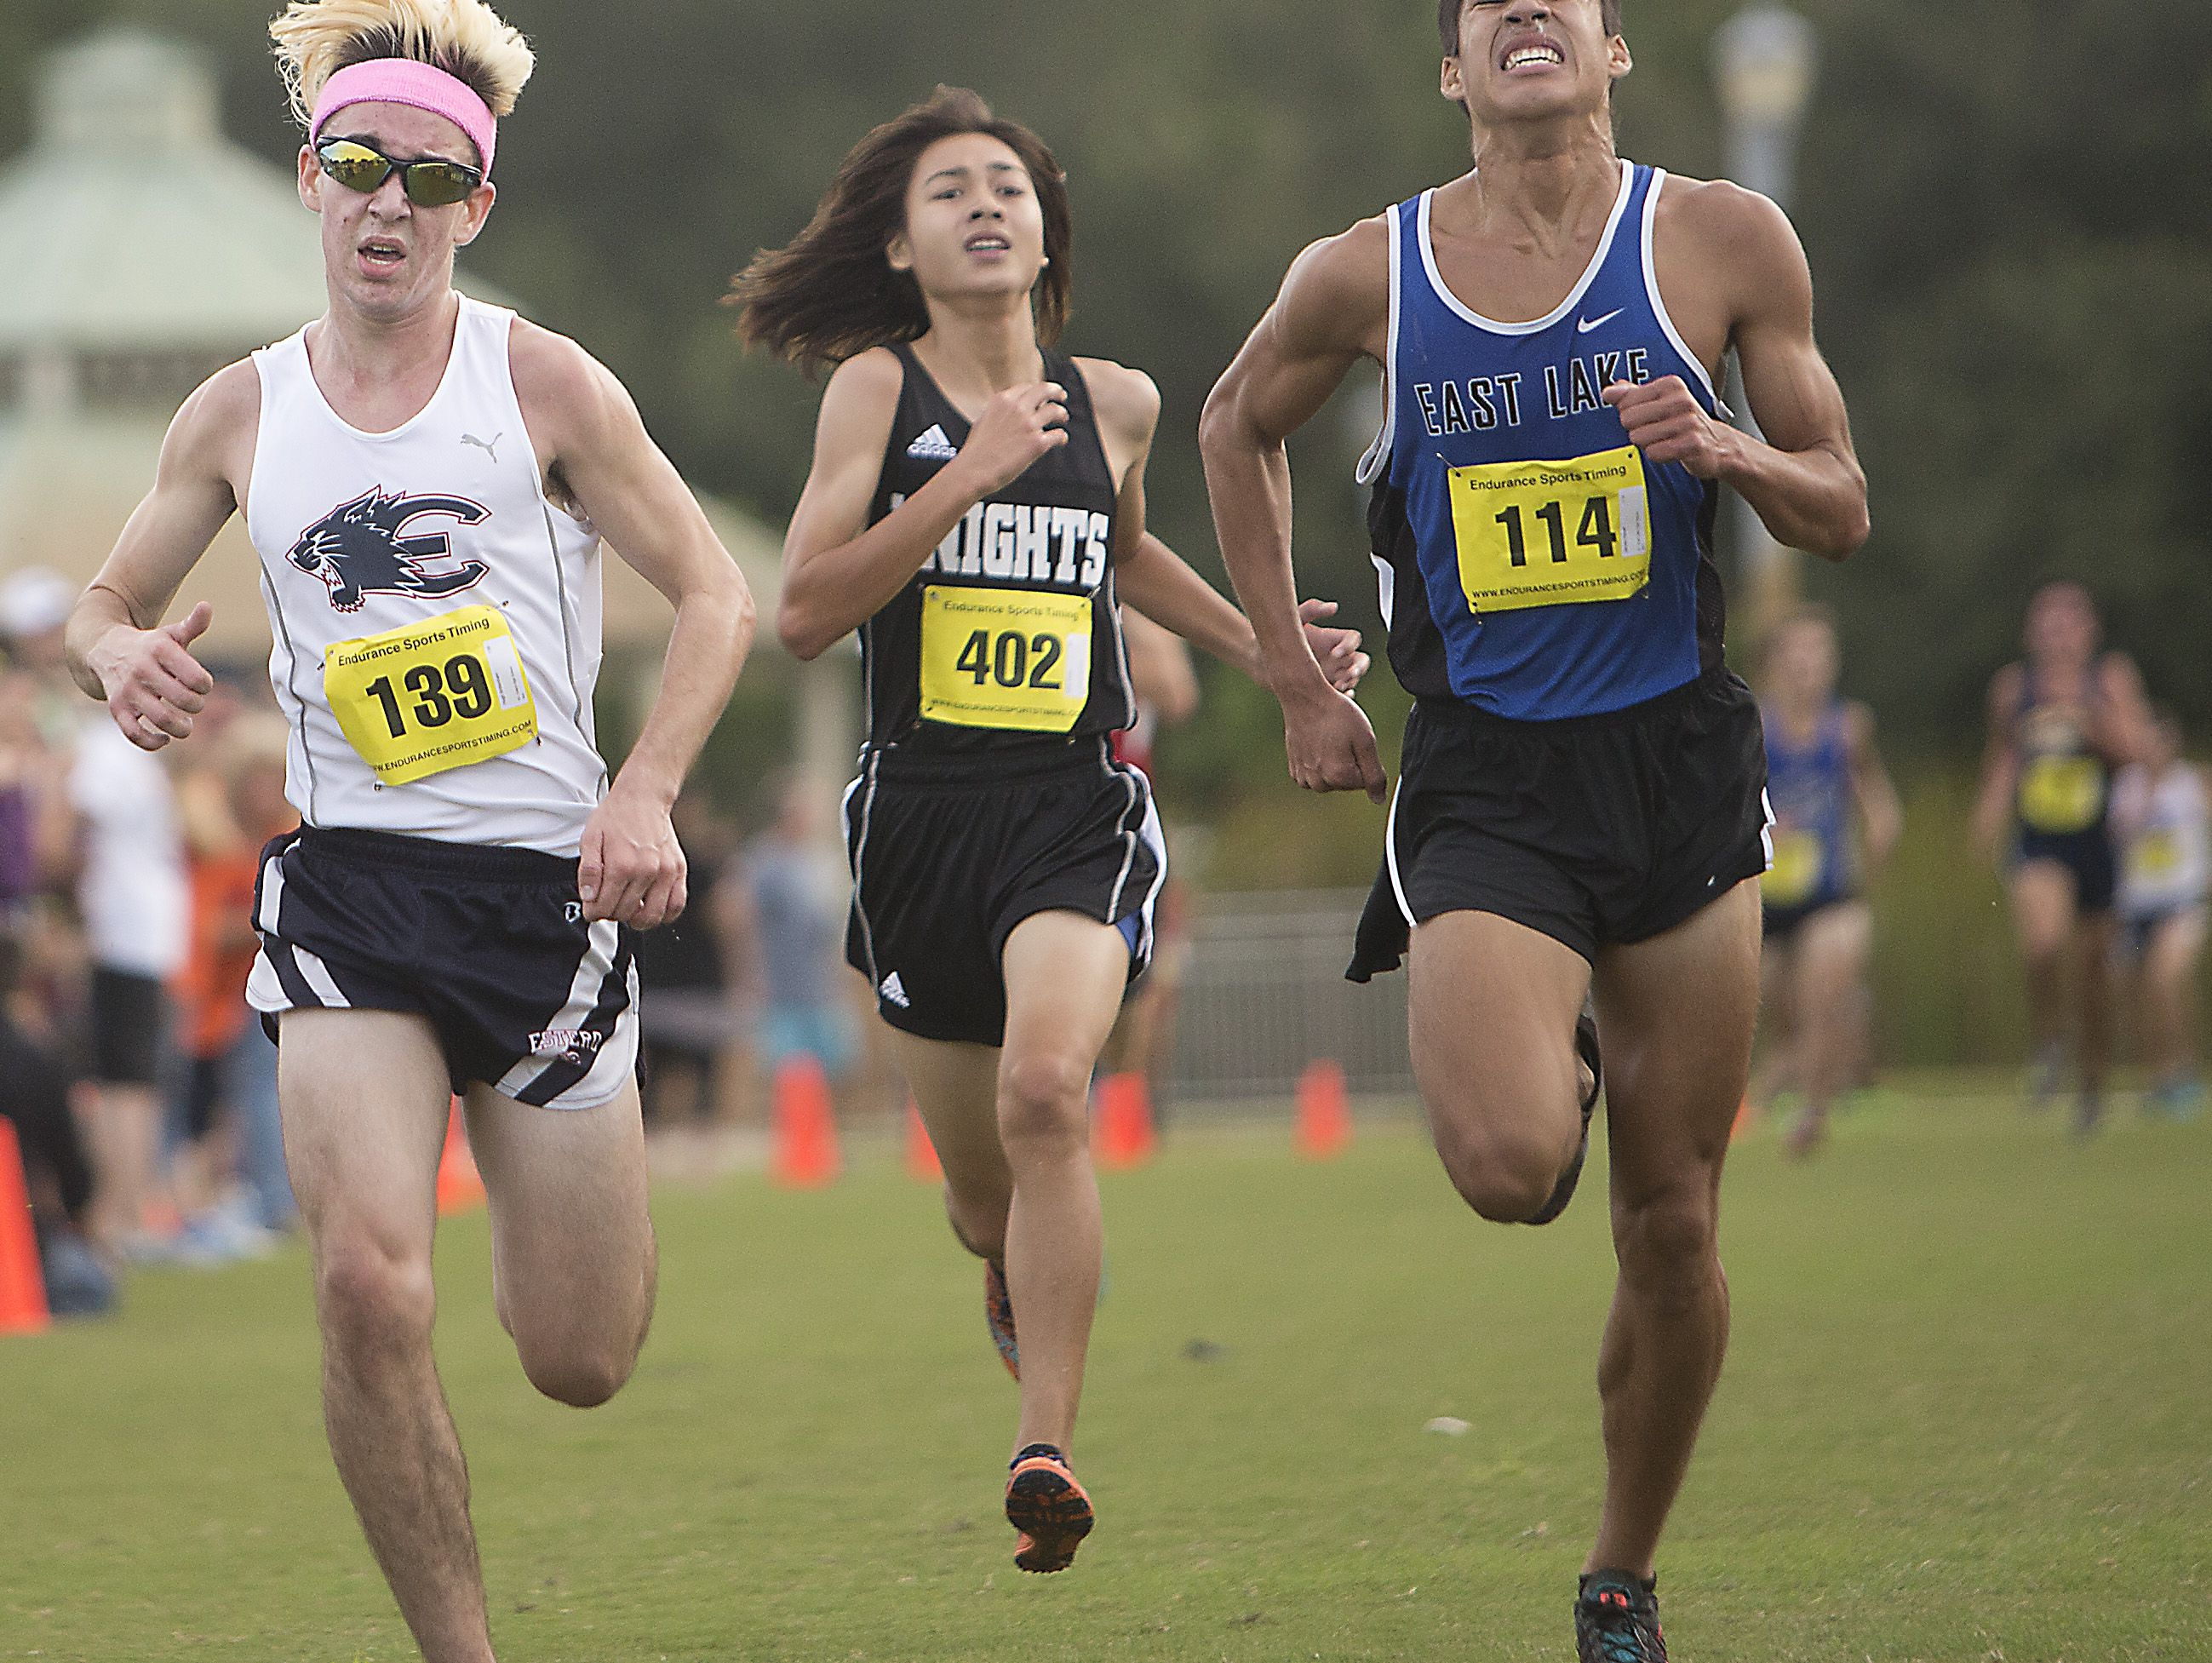 From left, Hugh Brittenham, Estero High School, Ethan Geiger, Robinson High School, and James Hasell, East Lake High School sprint to the finish line during the FHSAA 3A Region district championships at Estero Community Park.